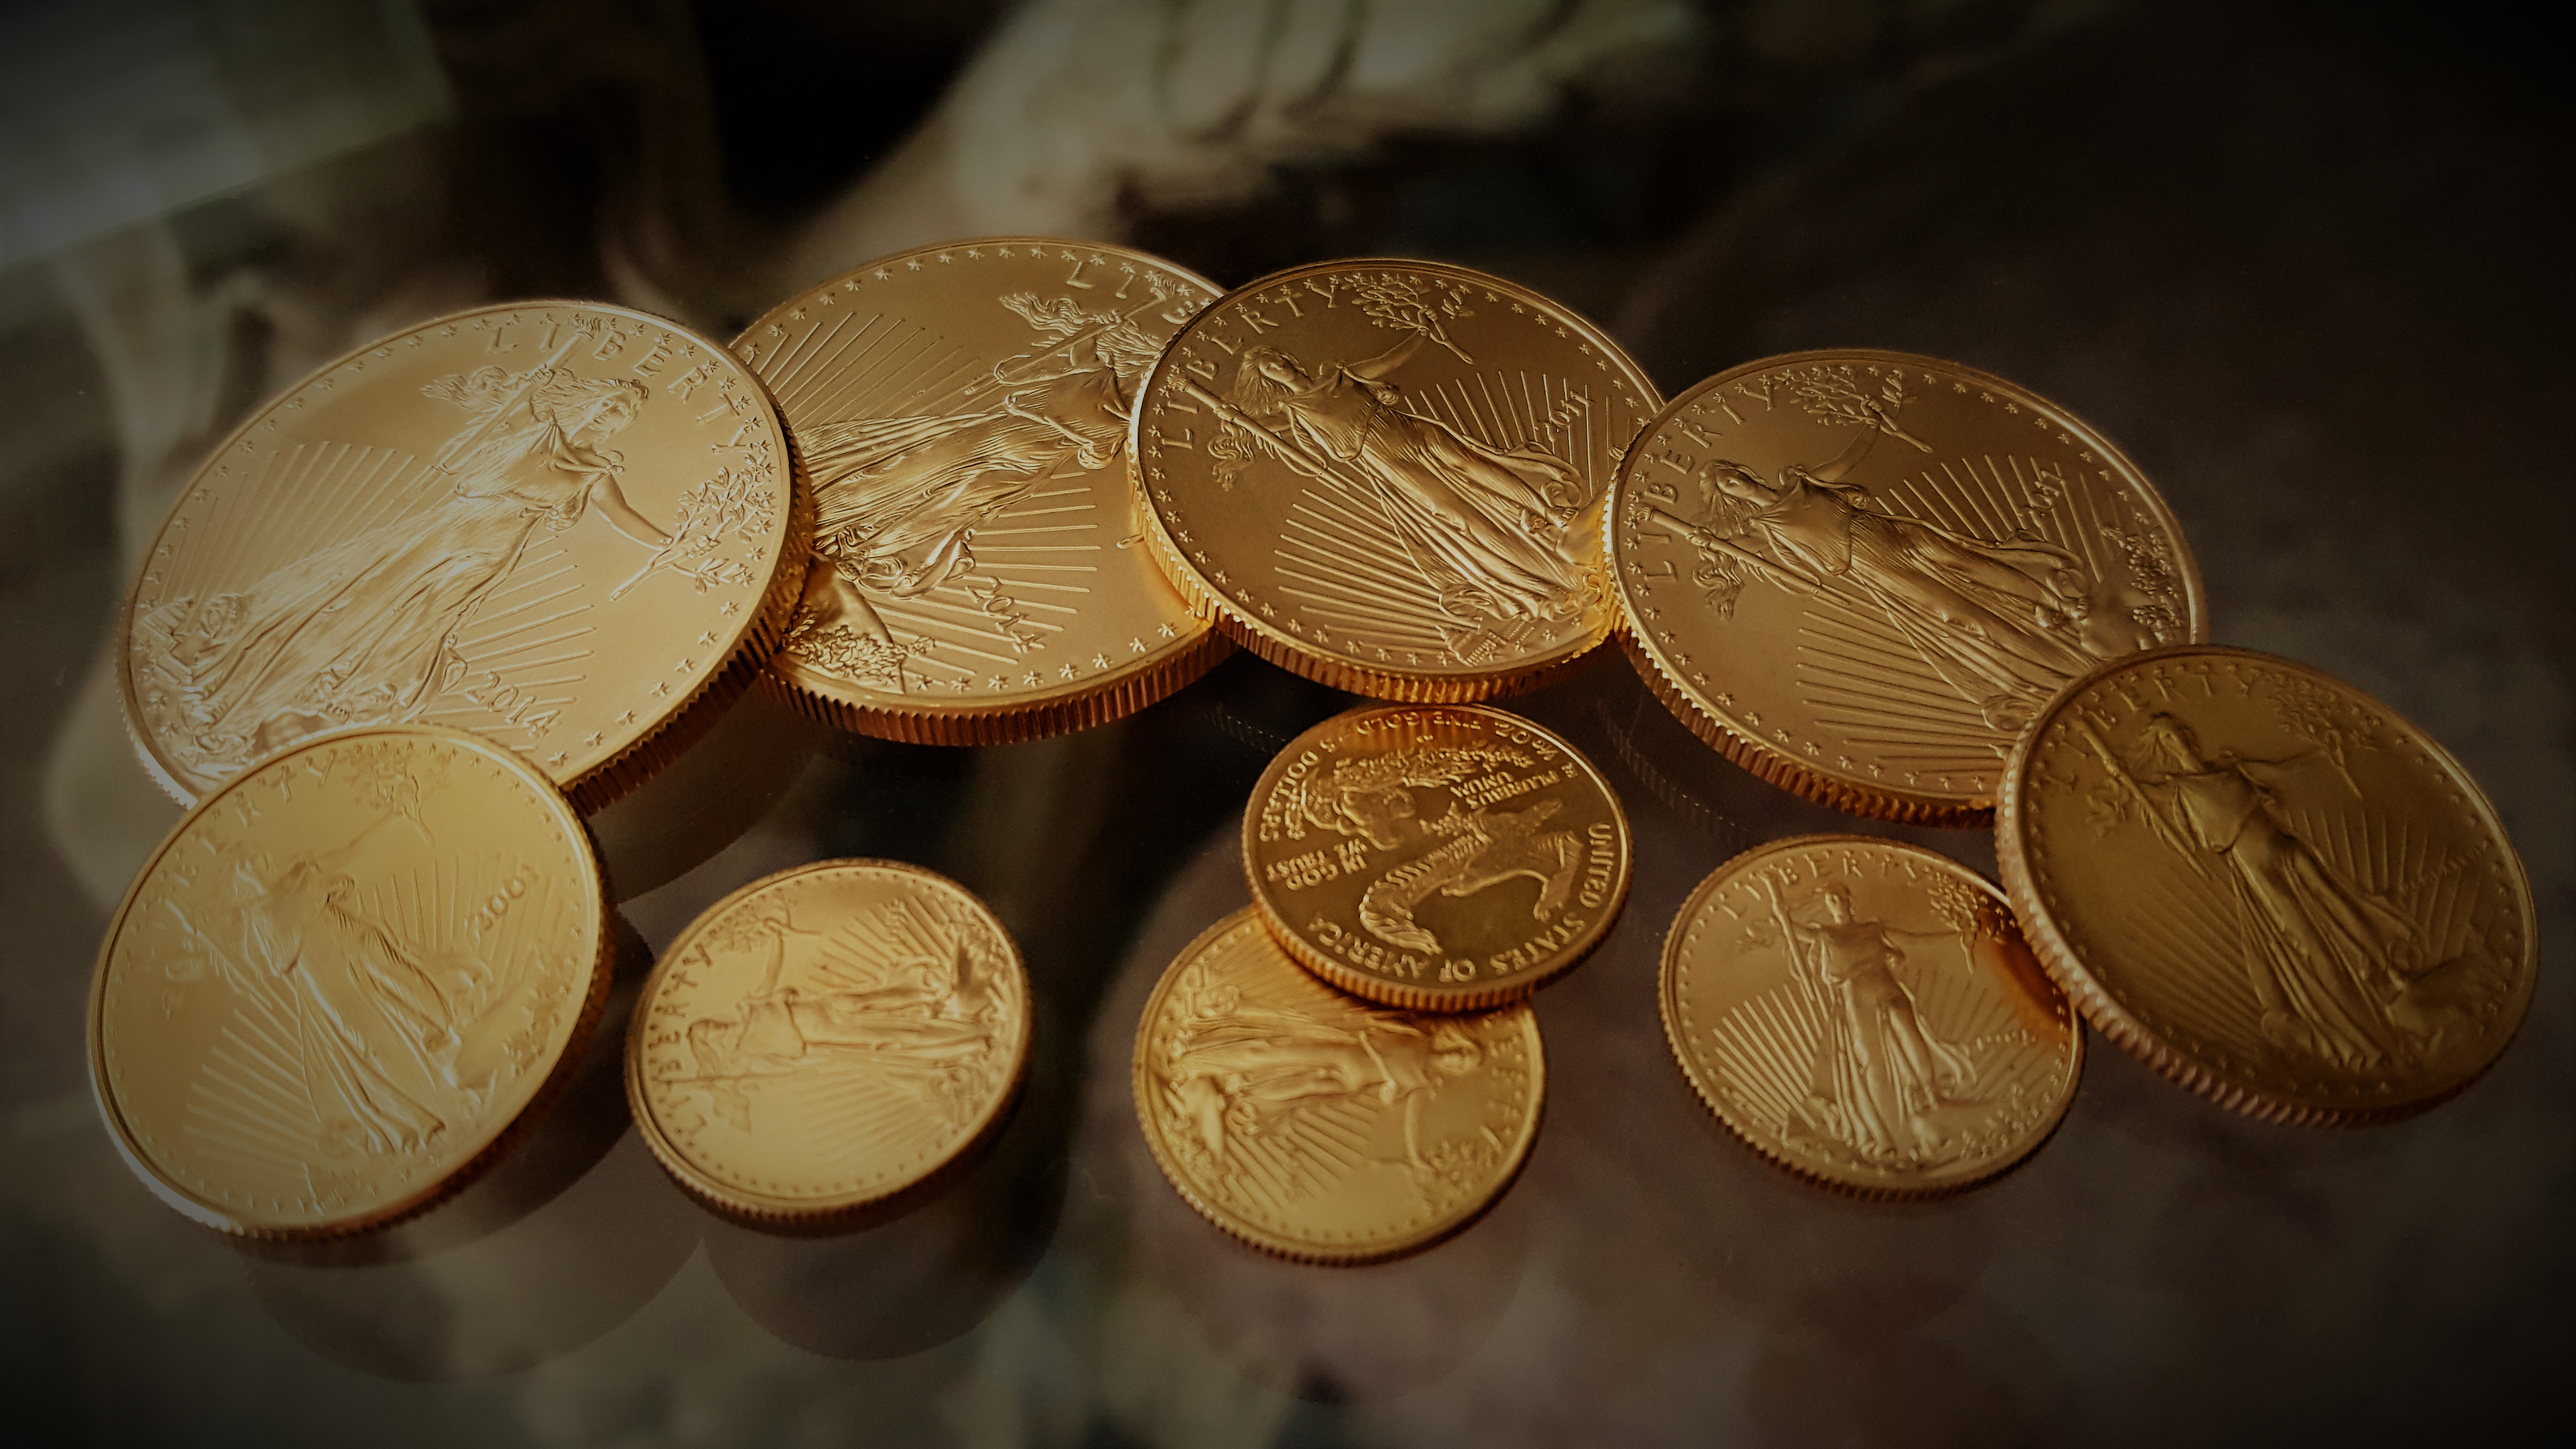 gold, money, picture of gold coins, cons, way to make money, Luxor Living and Style, blog